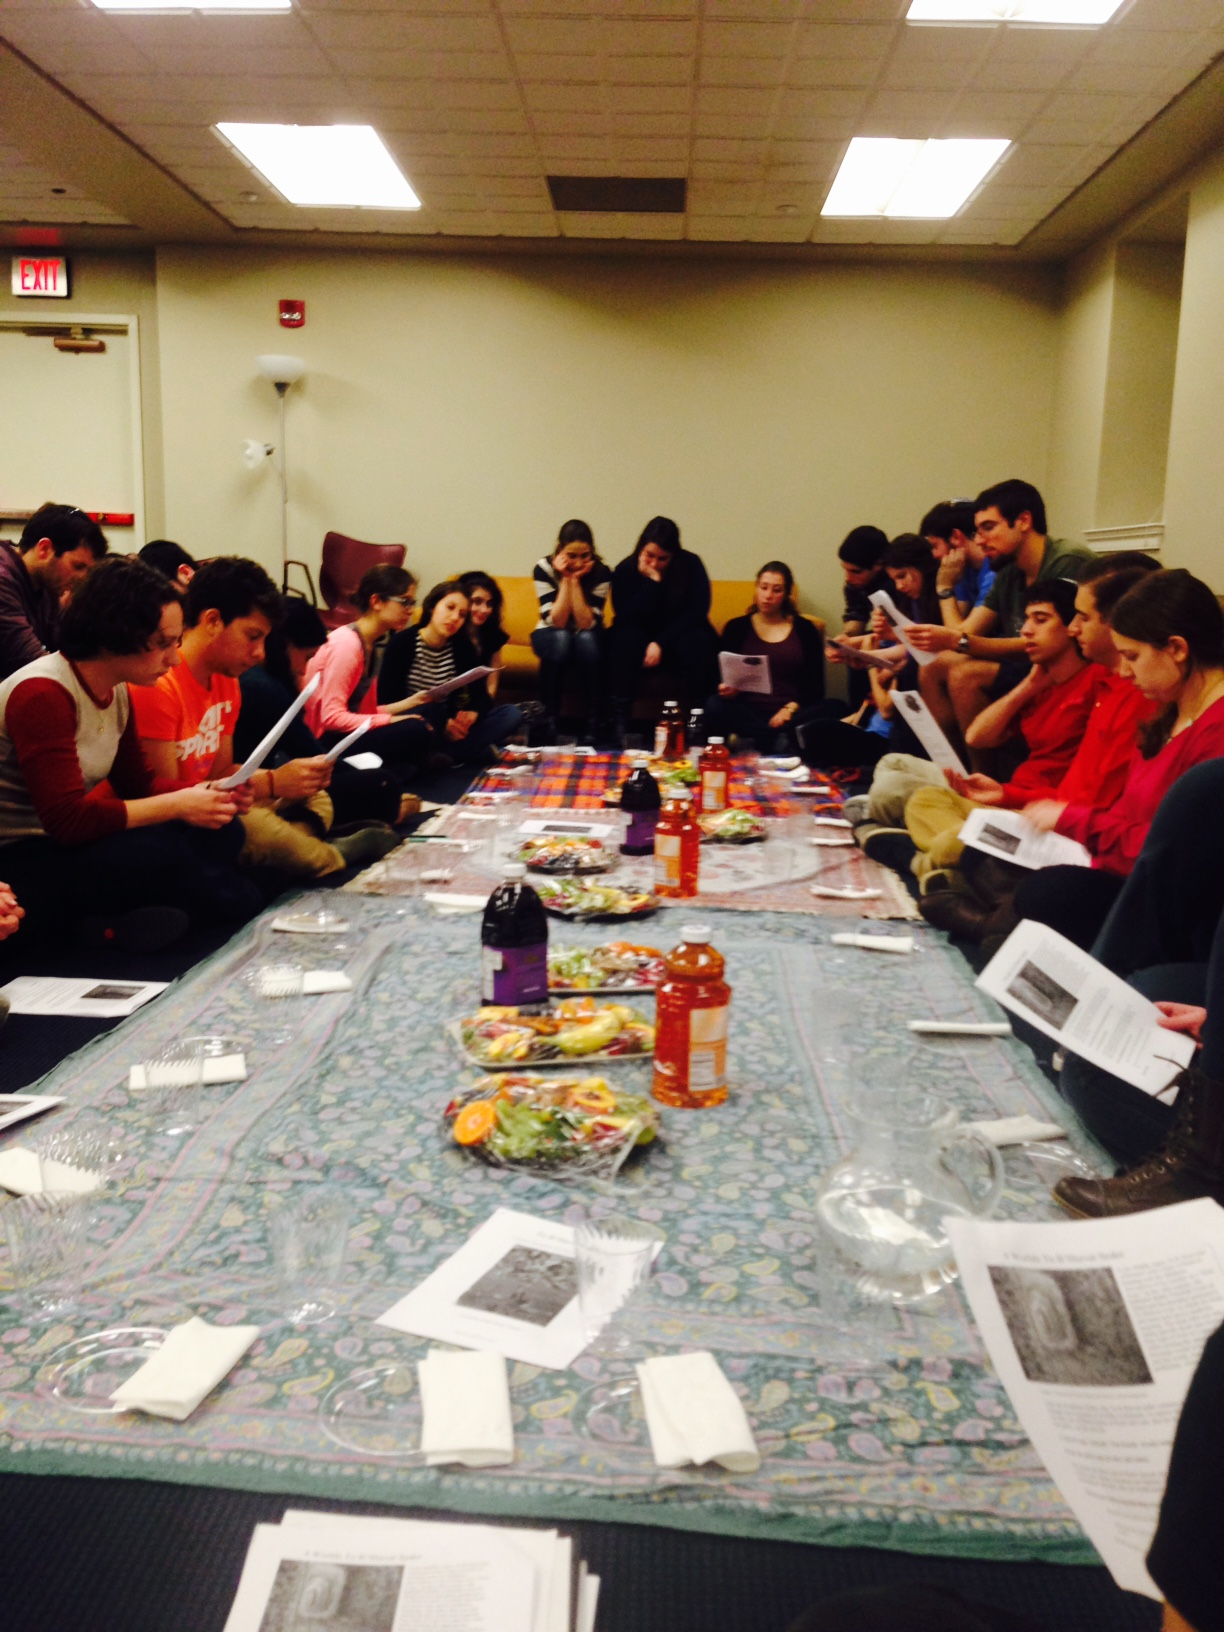 Approximately 40 students attended the Tu B'Shevat seder. (Photo courtesy of Rabbi Sarah Tasman)